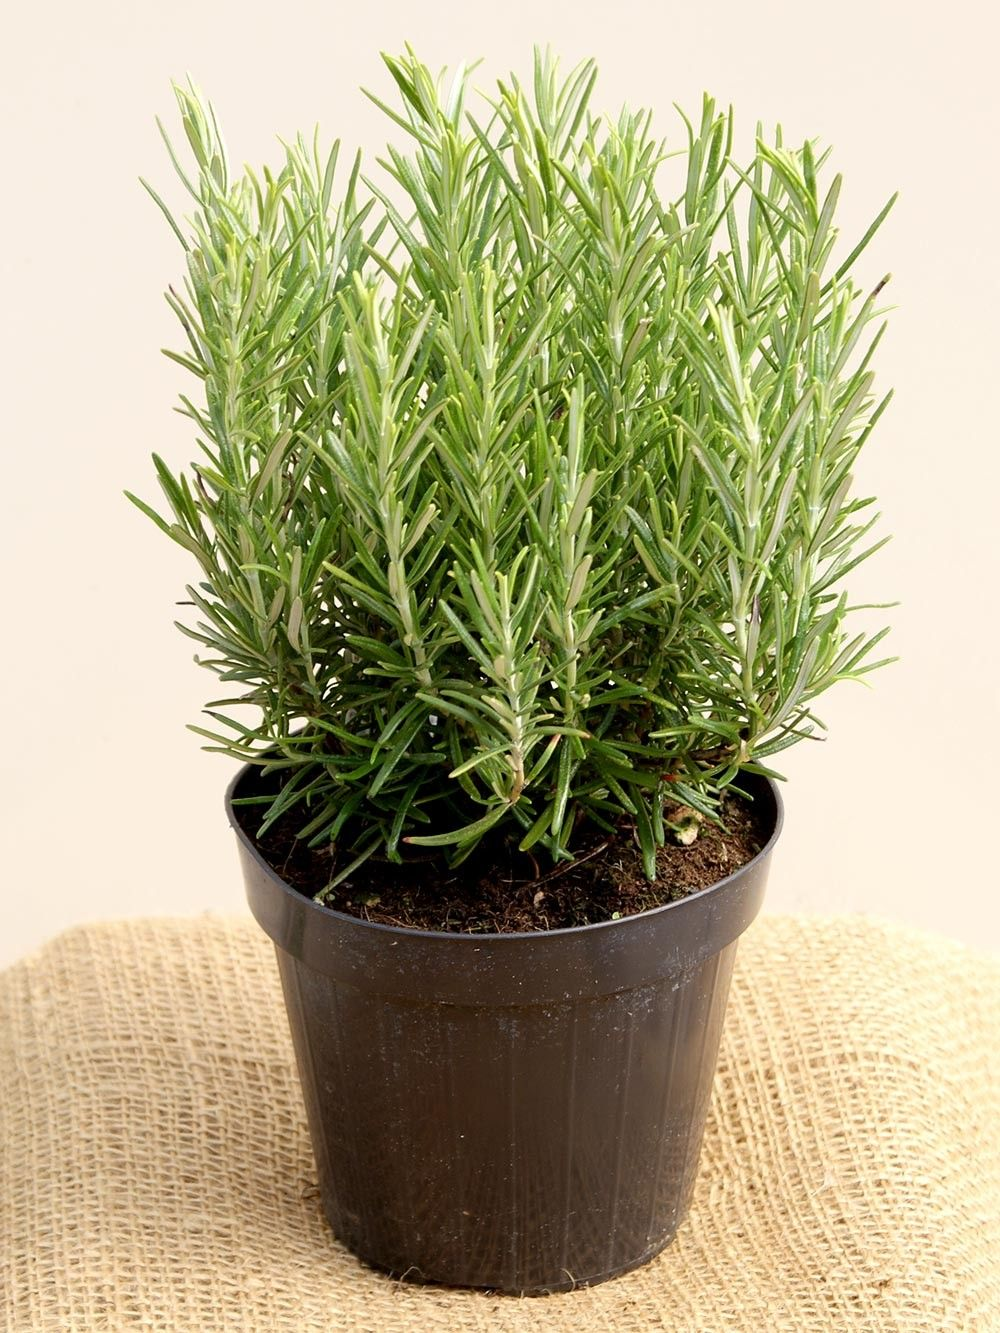 DIY Growing Rosemary Indoor and Outdoor | Комнатное садоводство ...